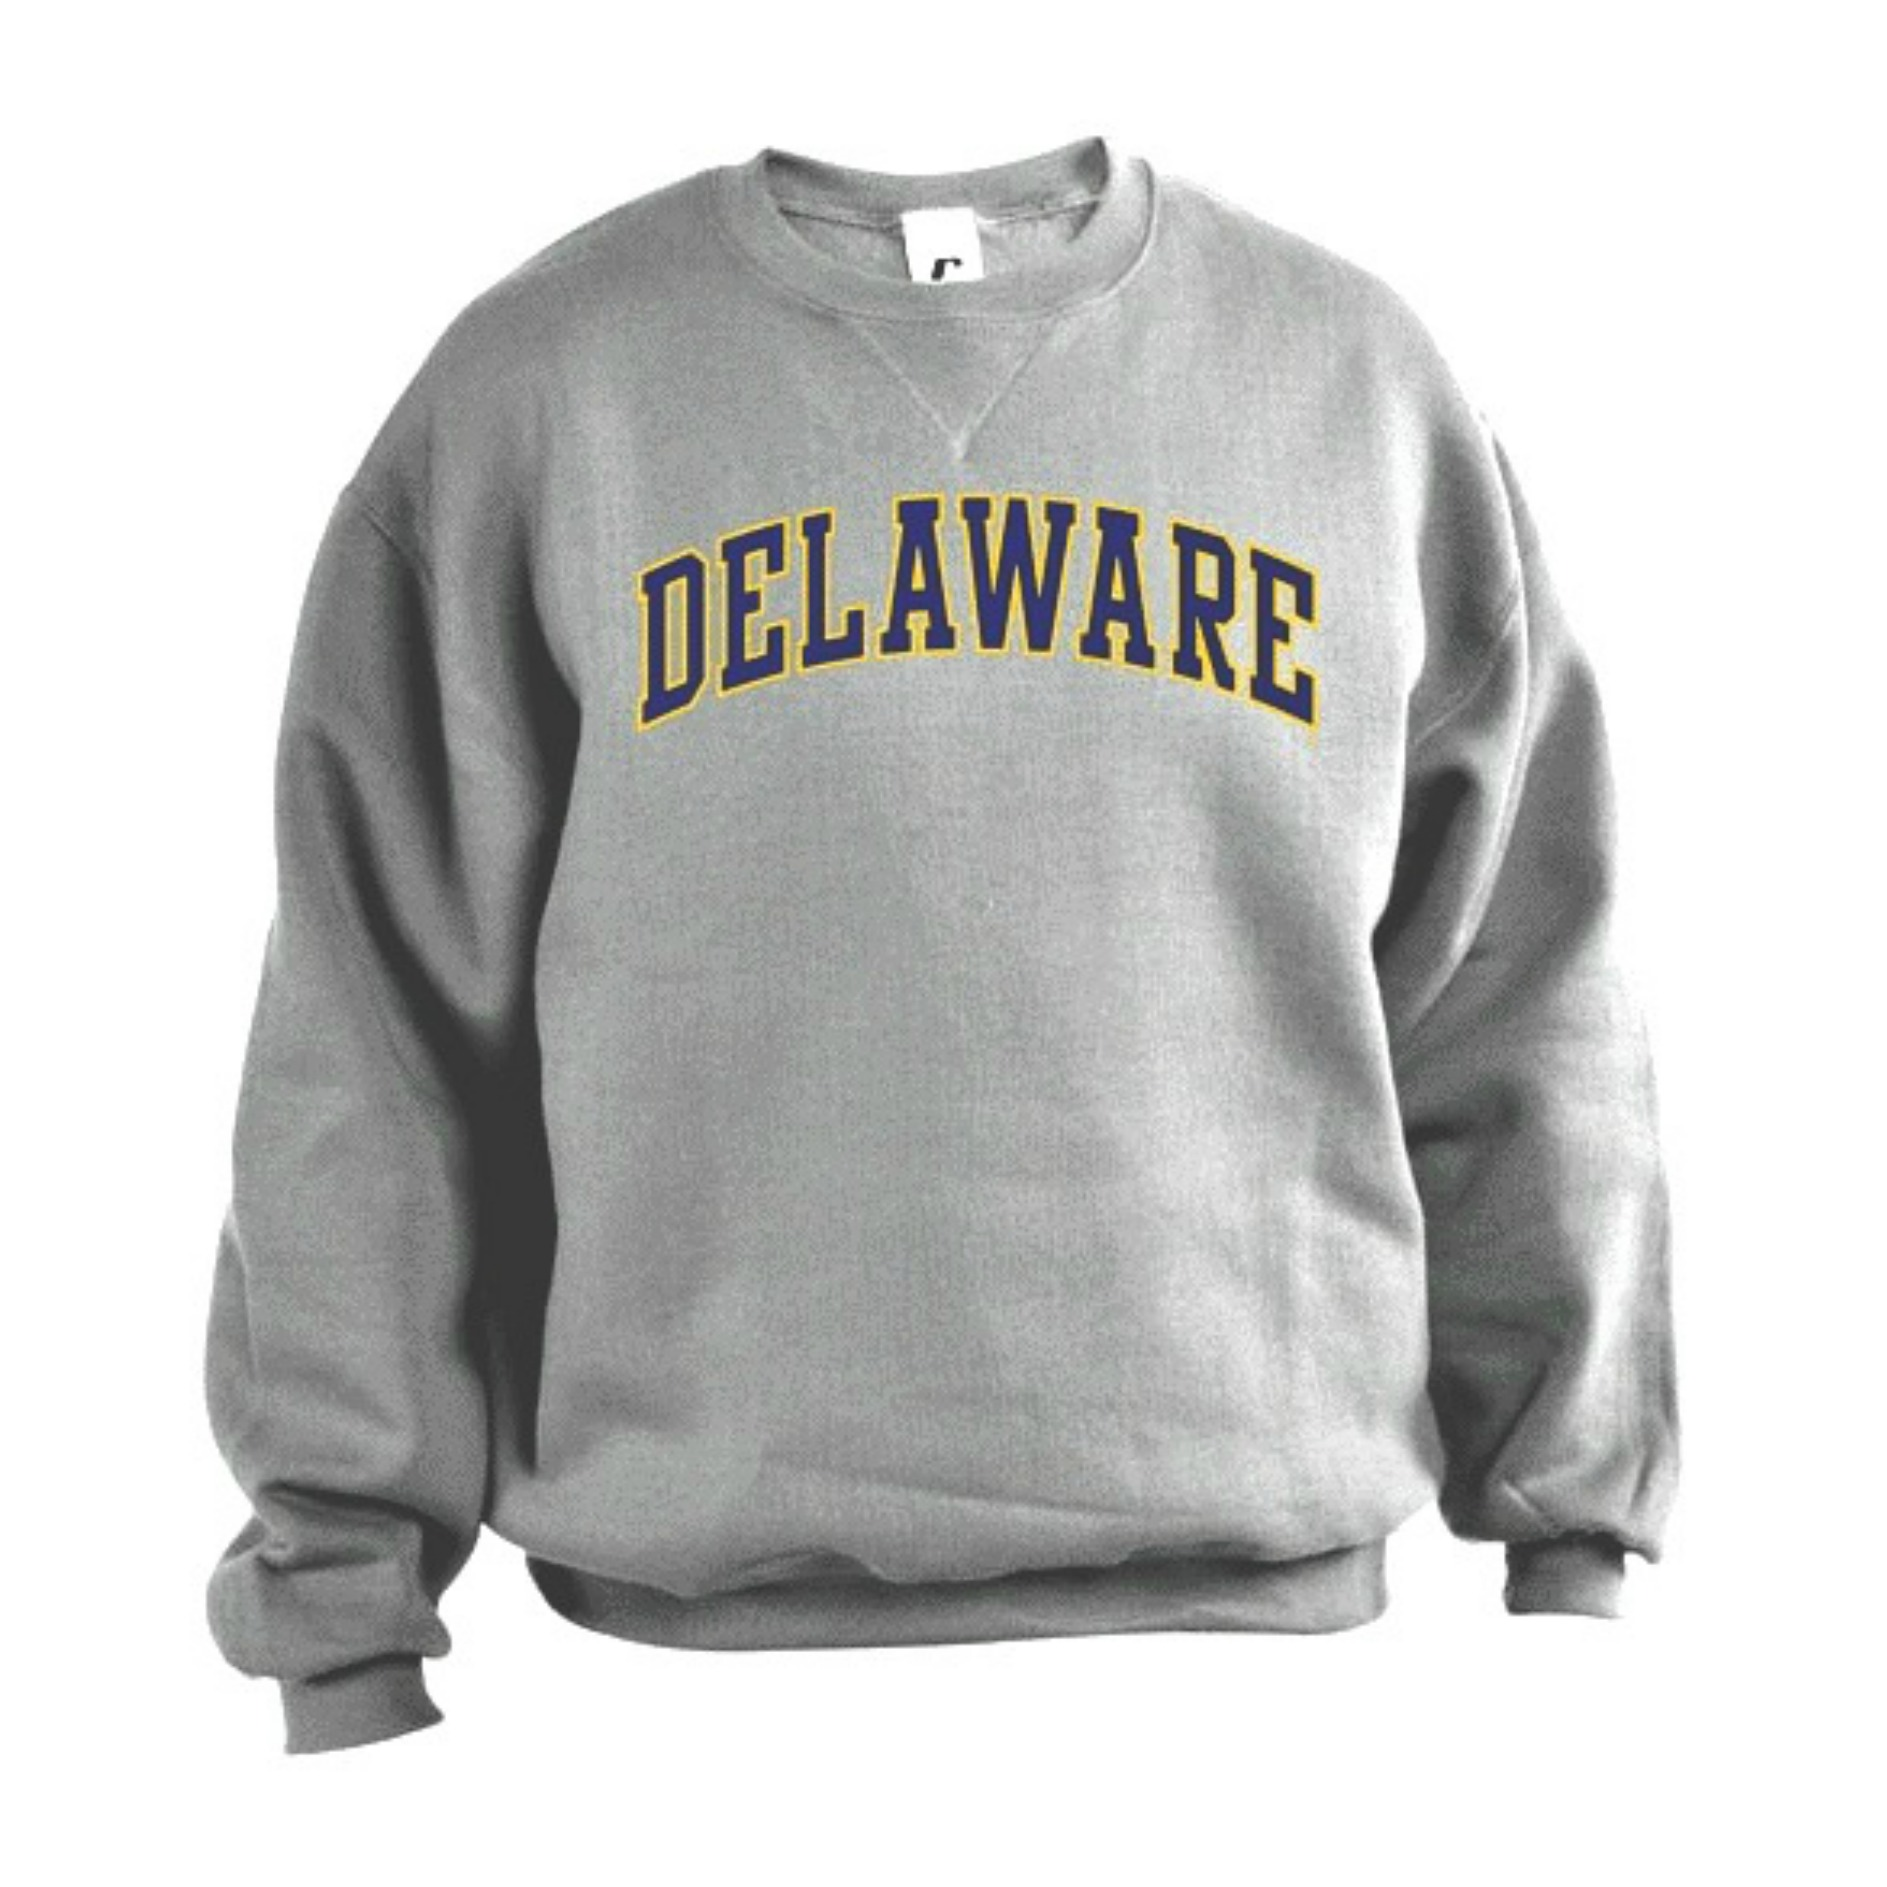 33a49a7c05 University of Delaware Arched Delaware Crew Neck Sweatshirt ...